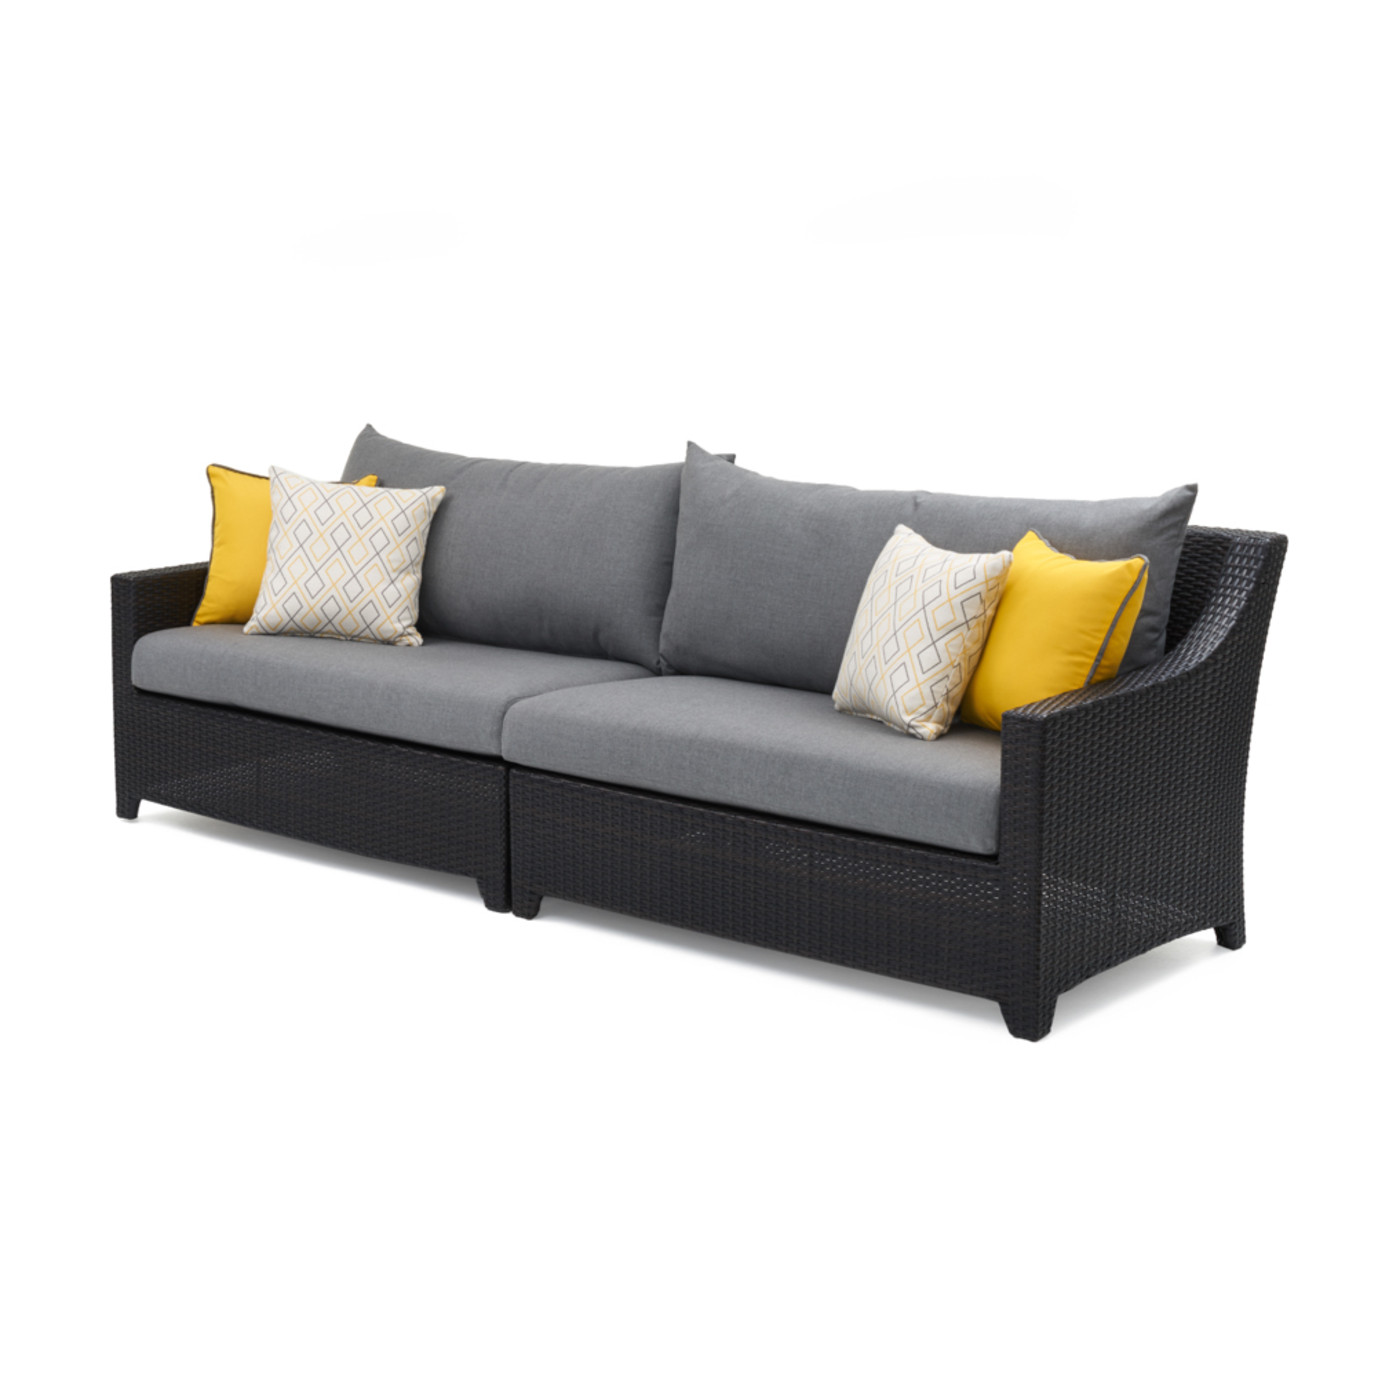 Deco™ Sofa - Sunflower Yellow